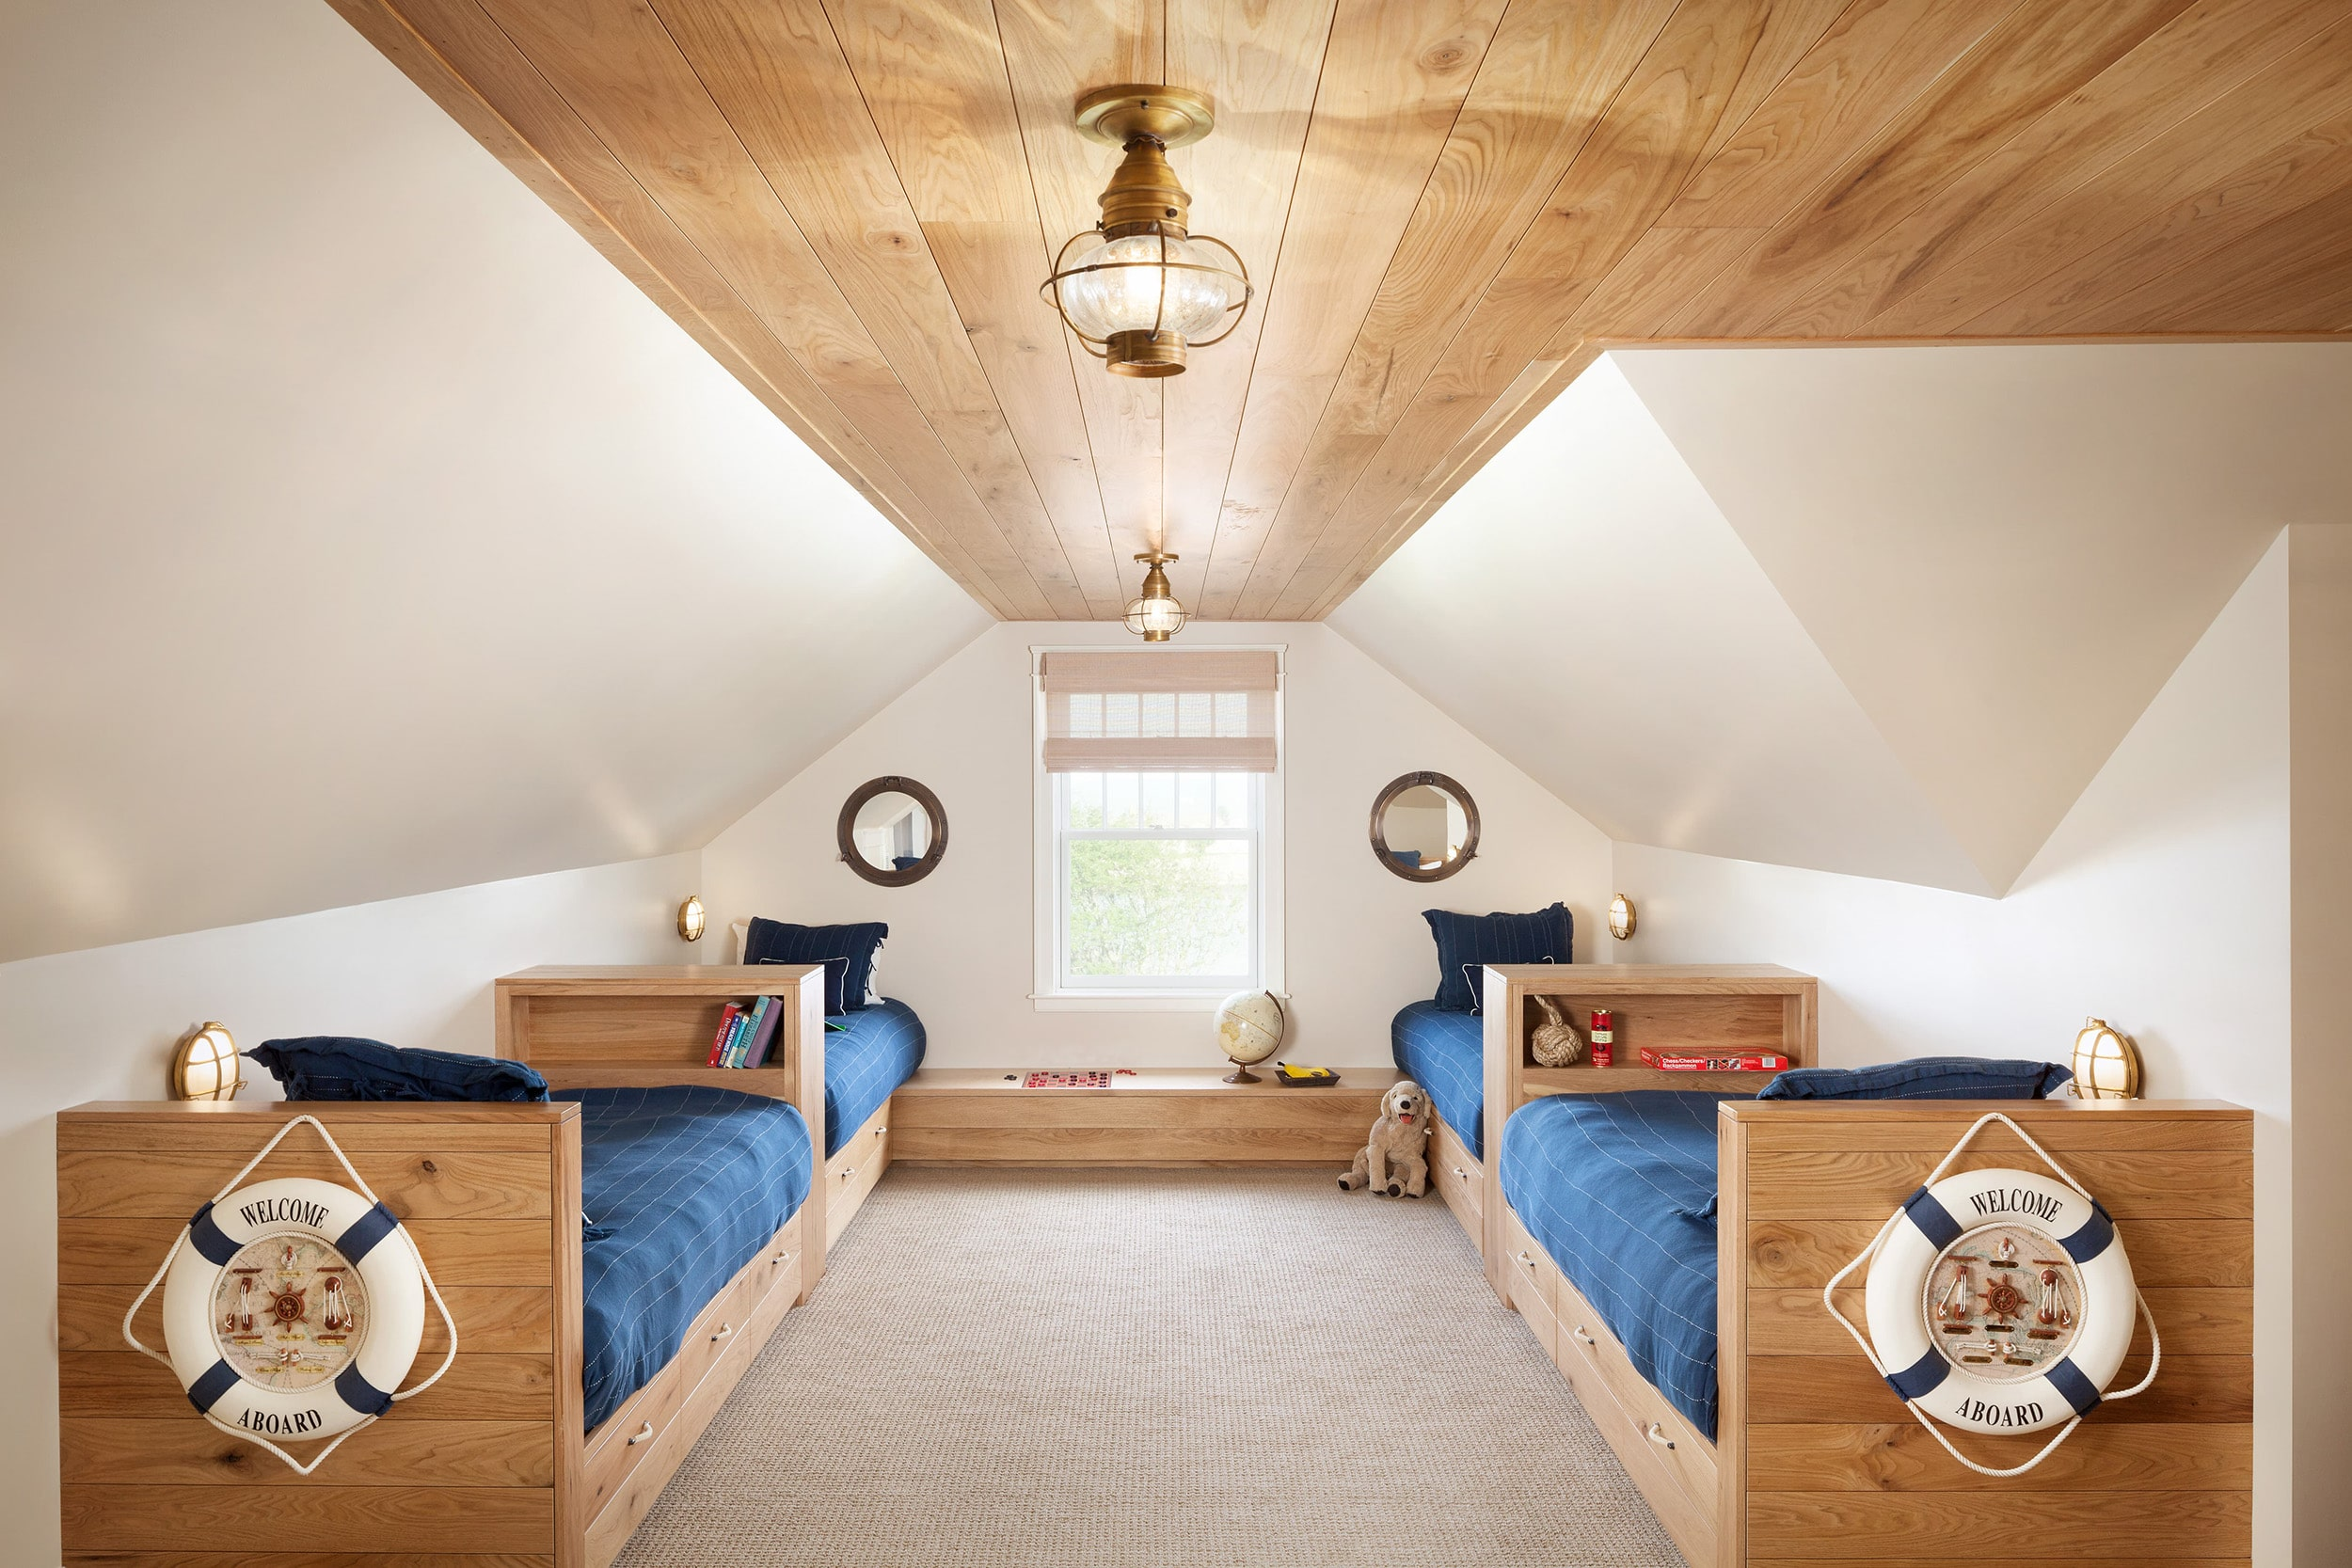 Traditional style home upstairs bedroom